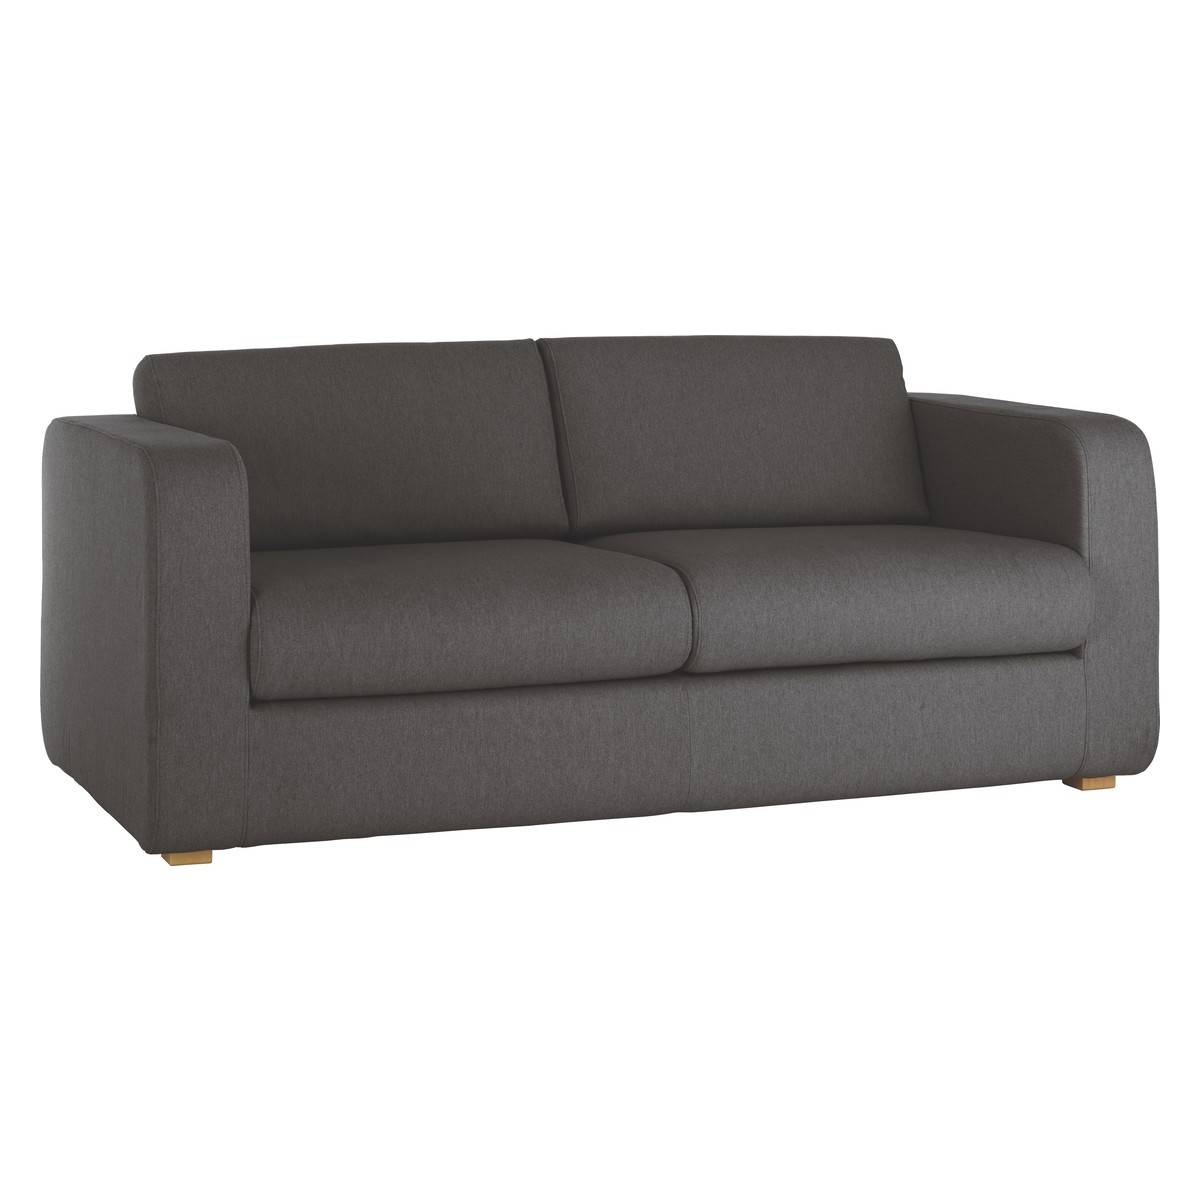 Sofas Center : Three Seater Sofa Hugo Tan Leather Wooden Legs throughout 3 Seater Sofas For Sale (Image 23 of 30)